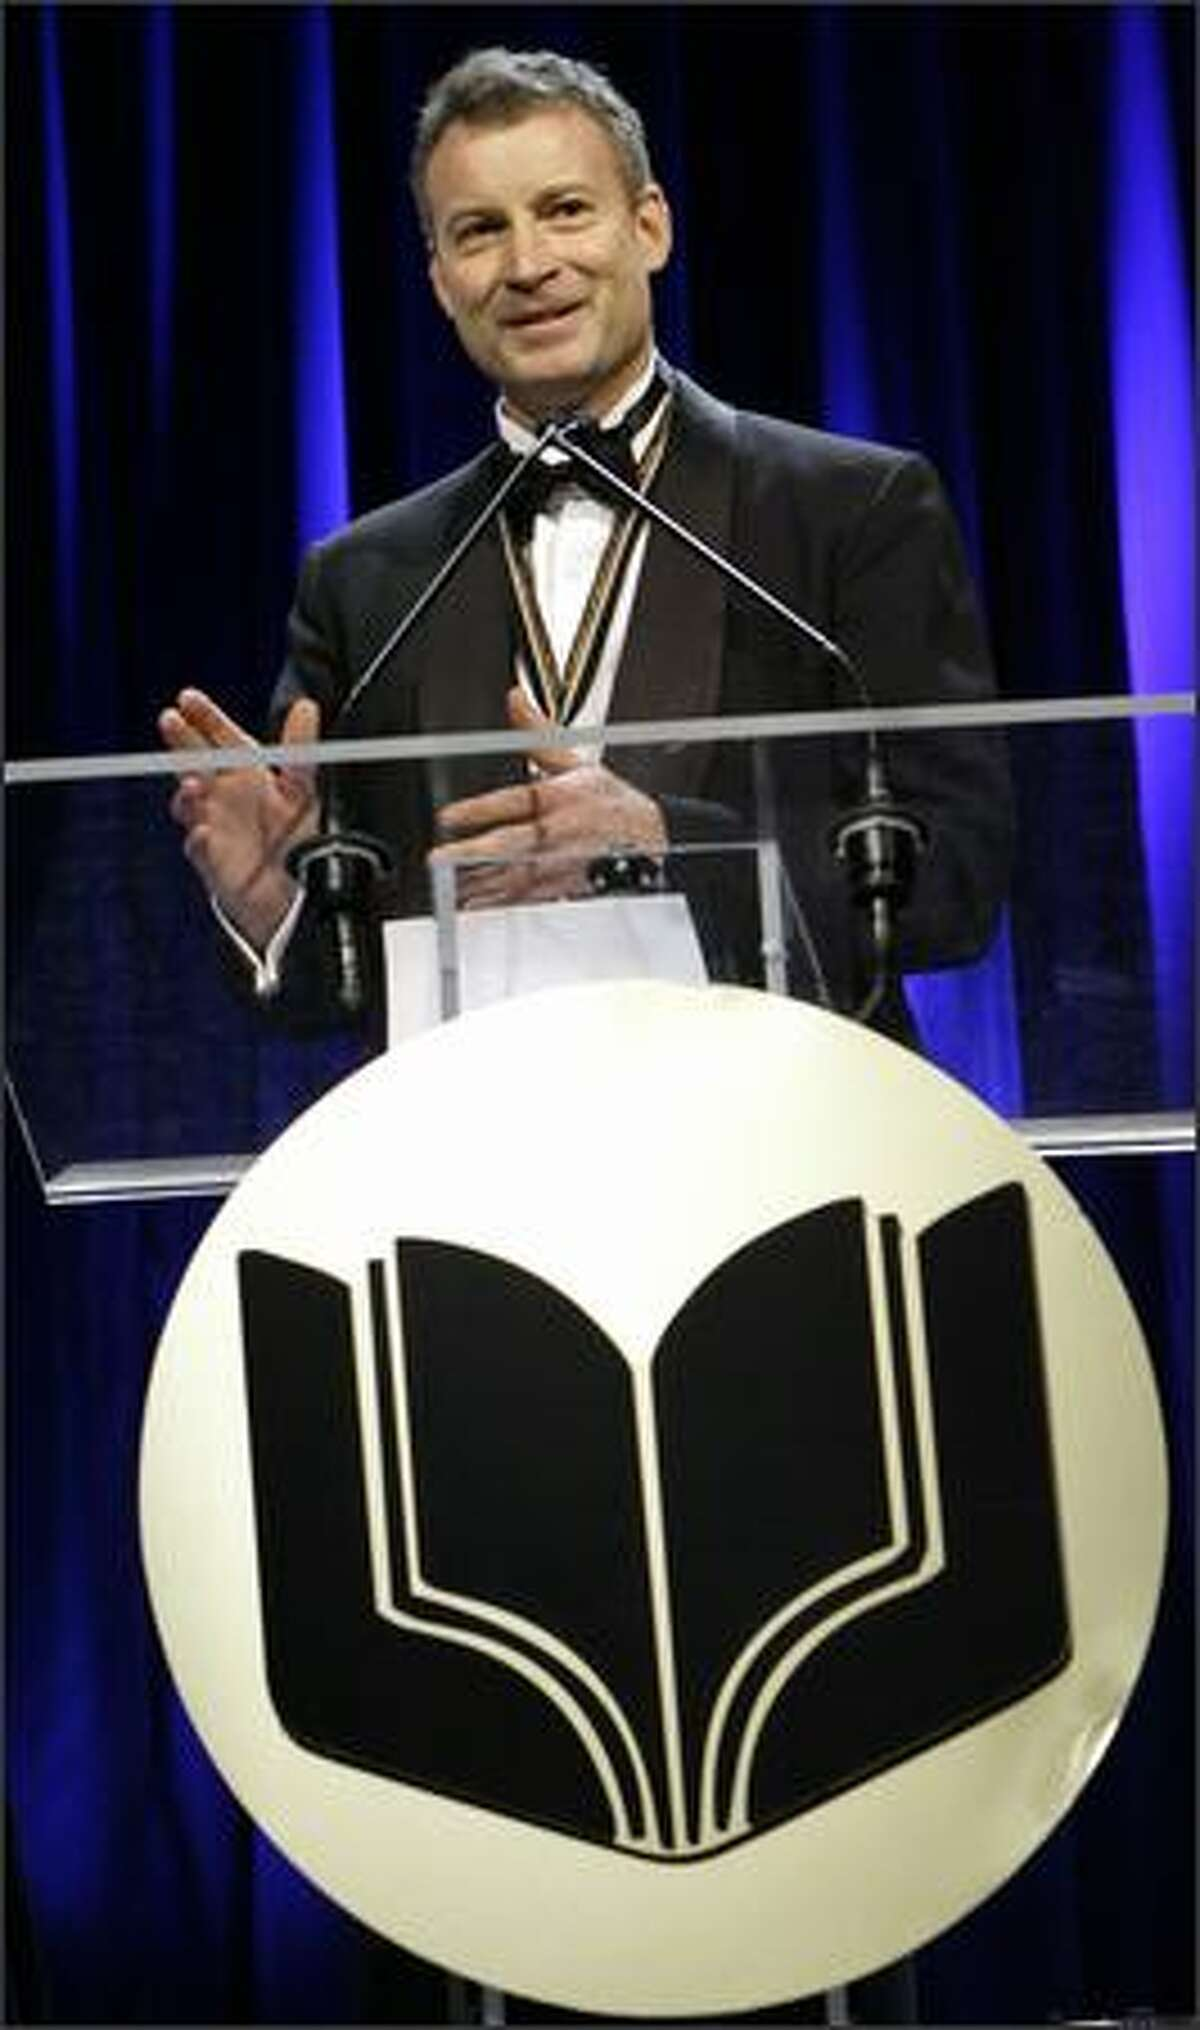 Timothy Egan addresses dinner guests after accepting the award for best nonfiction at the 2006 National Book Awards in New York. (AP Photo/Stuart Ramson)